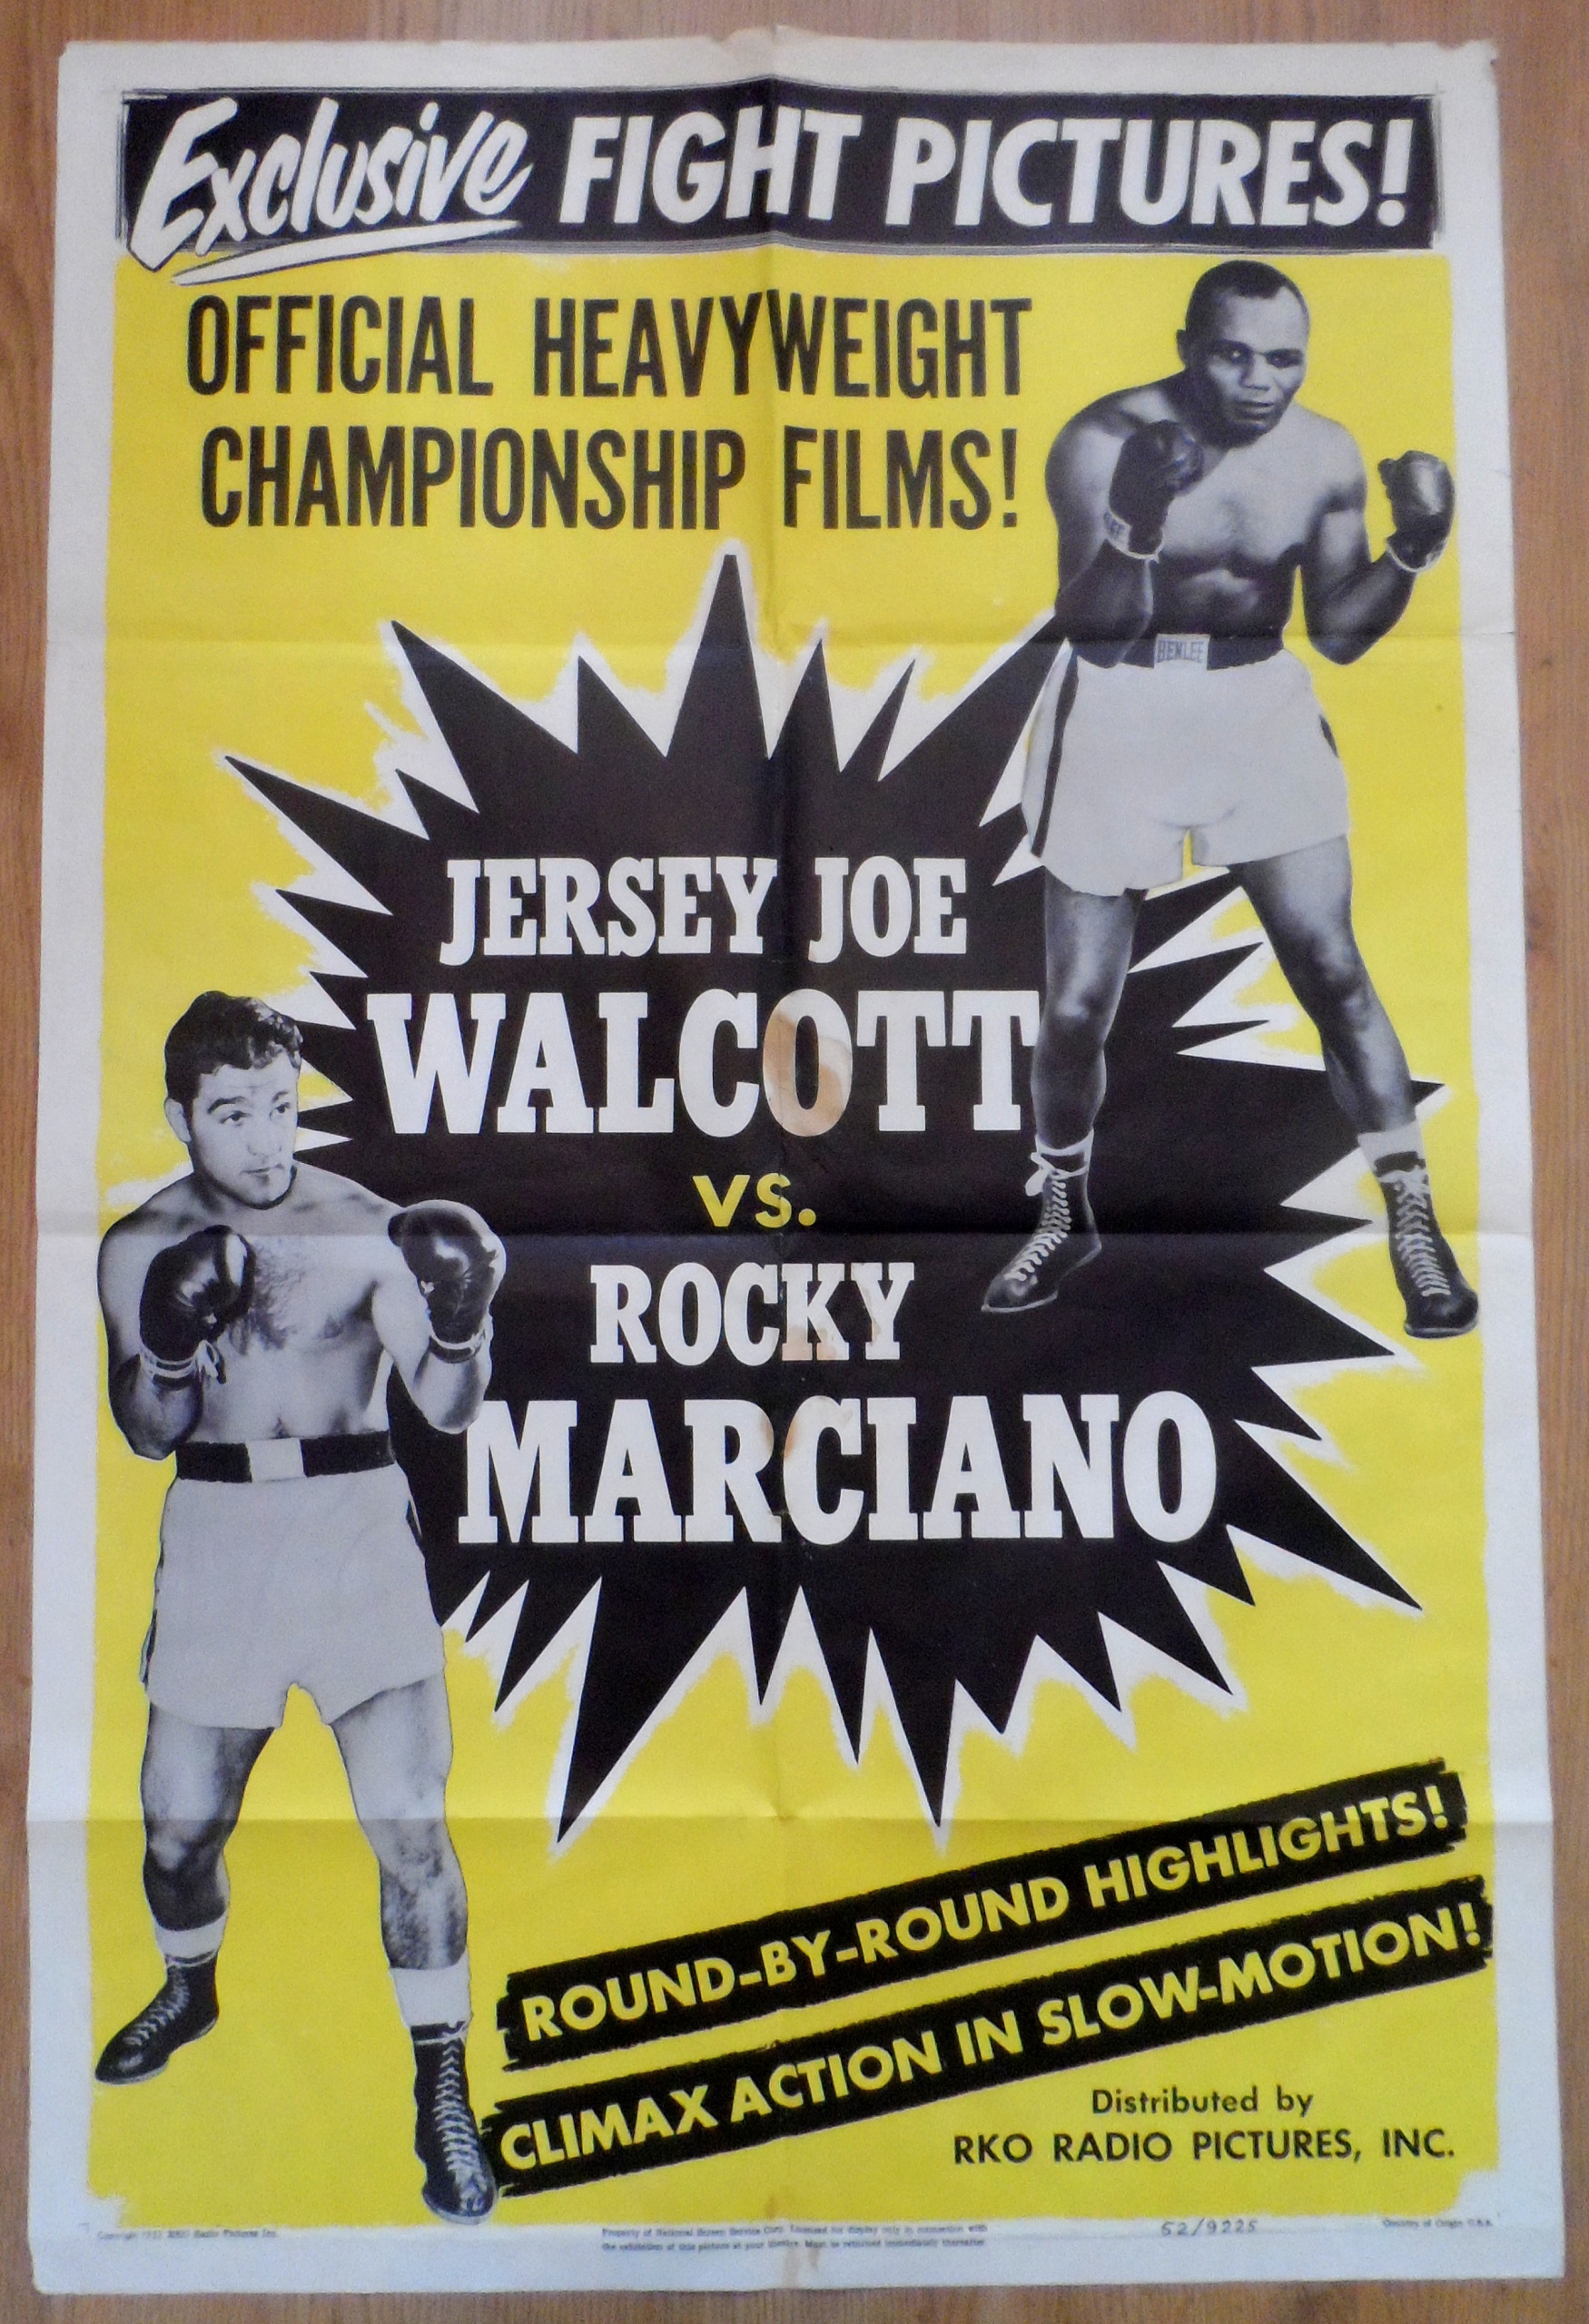 1952_Rocky_Marciano_v_Jersey_Joe_Walcott_fight_film_poster on Gym Page Border